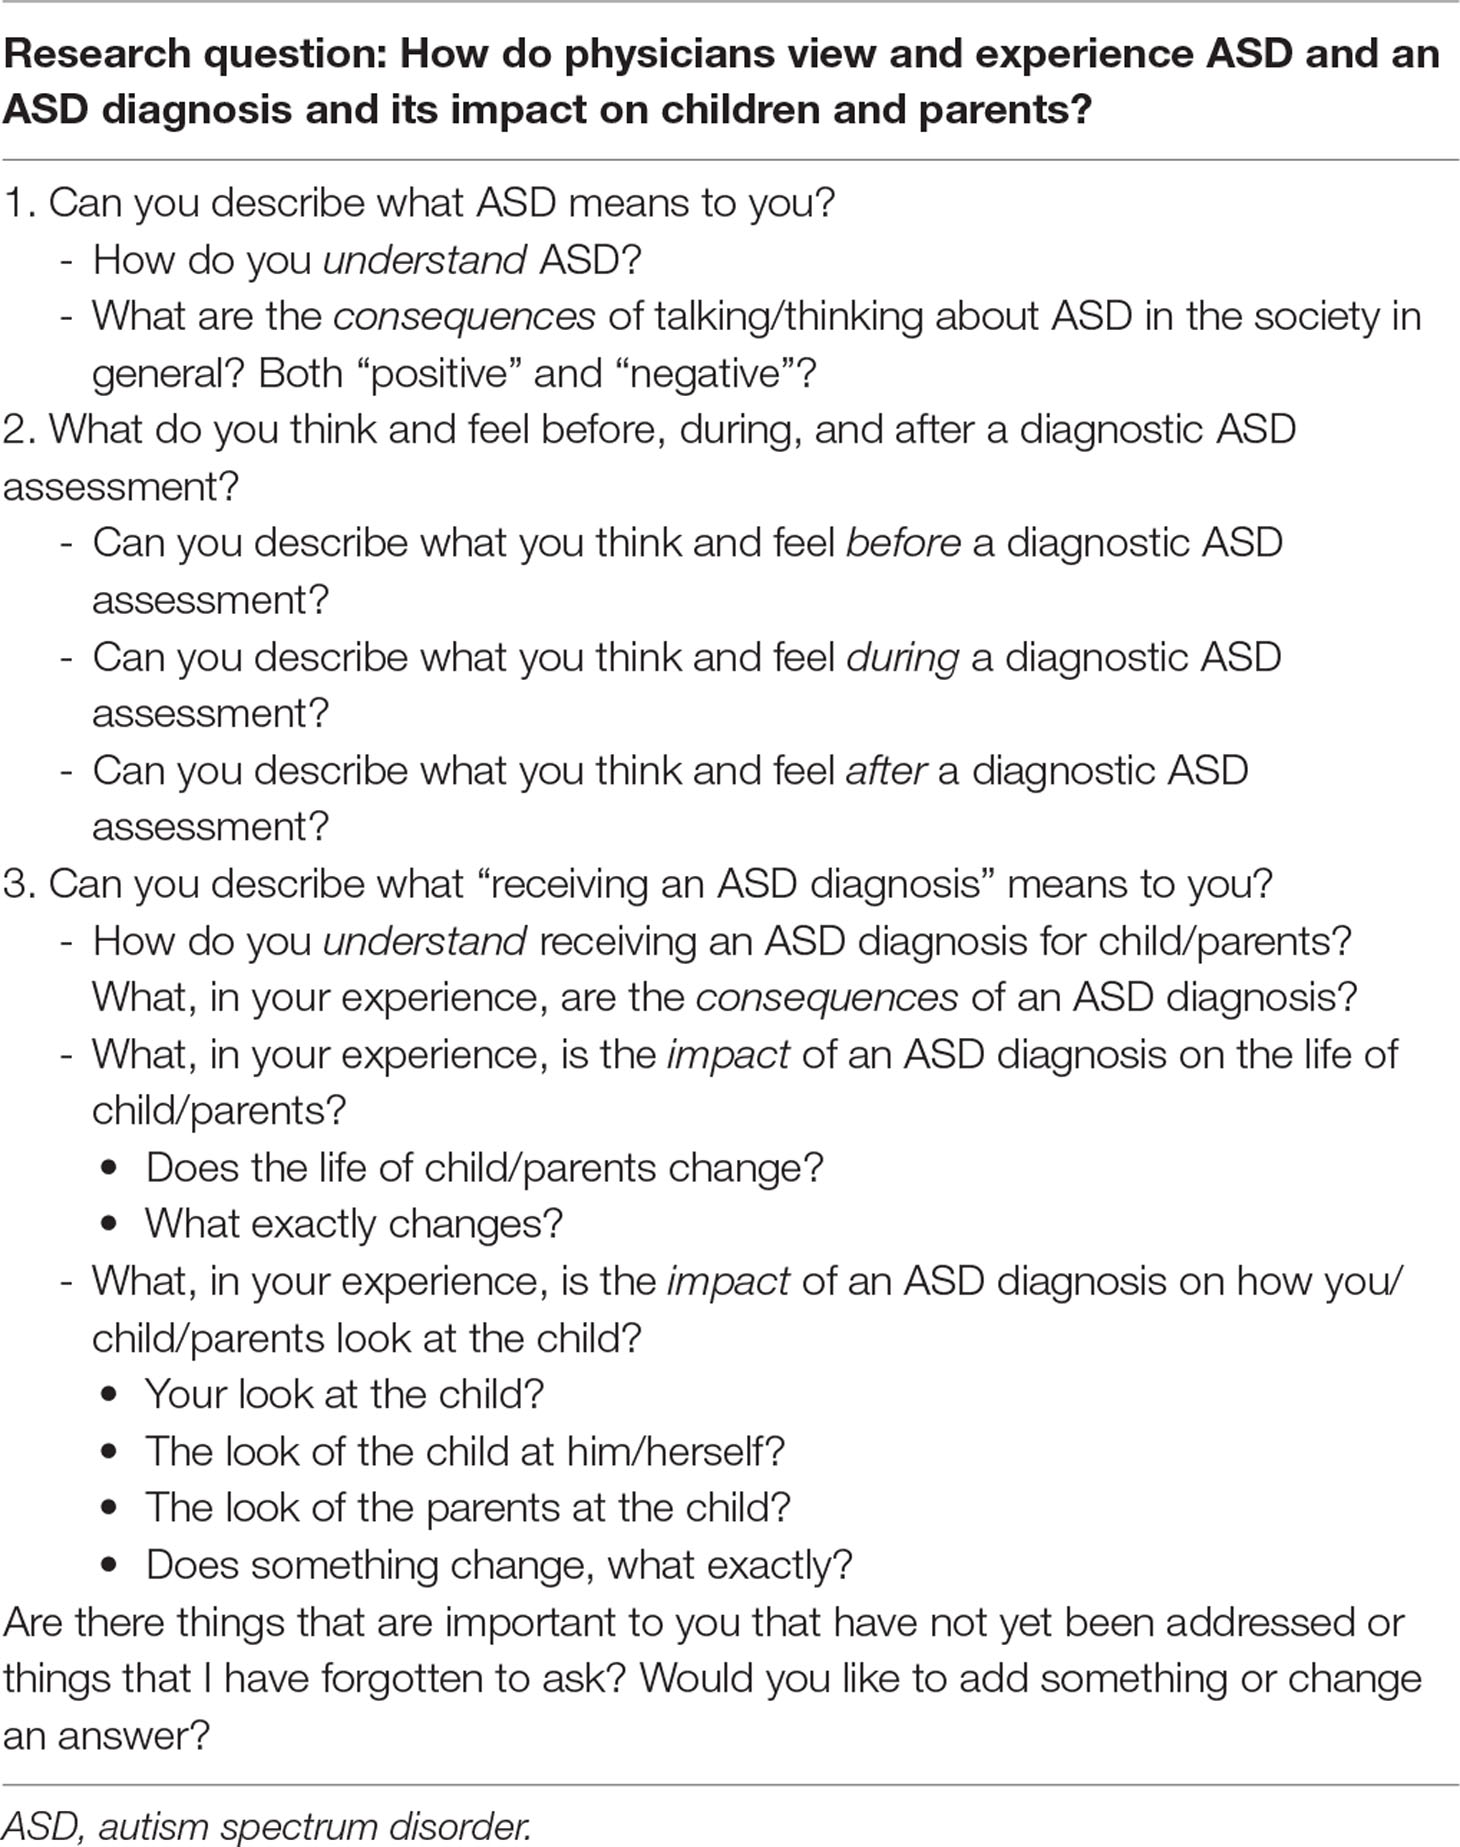 Perspective On Cdc Autism Findings >> Frontiers Physician View And Experience Of The Diagnosis Of Autism